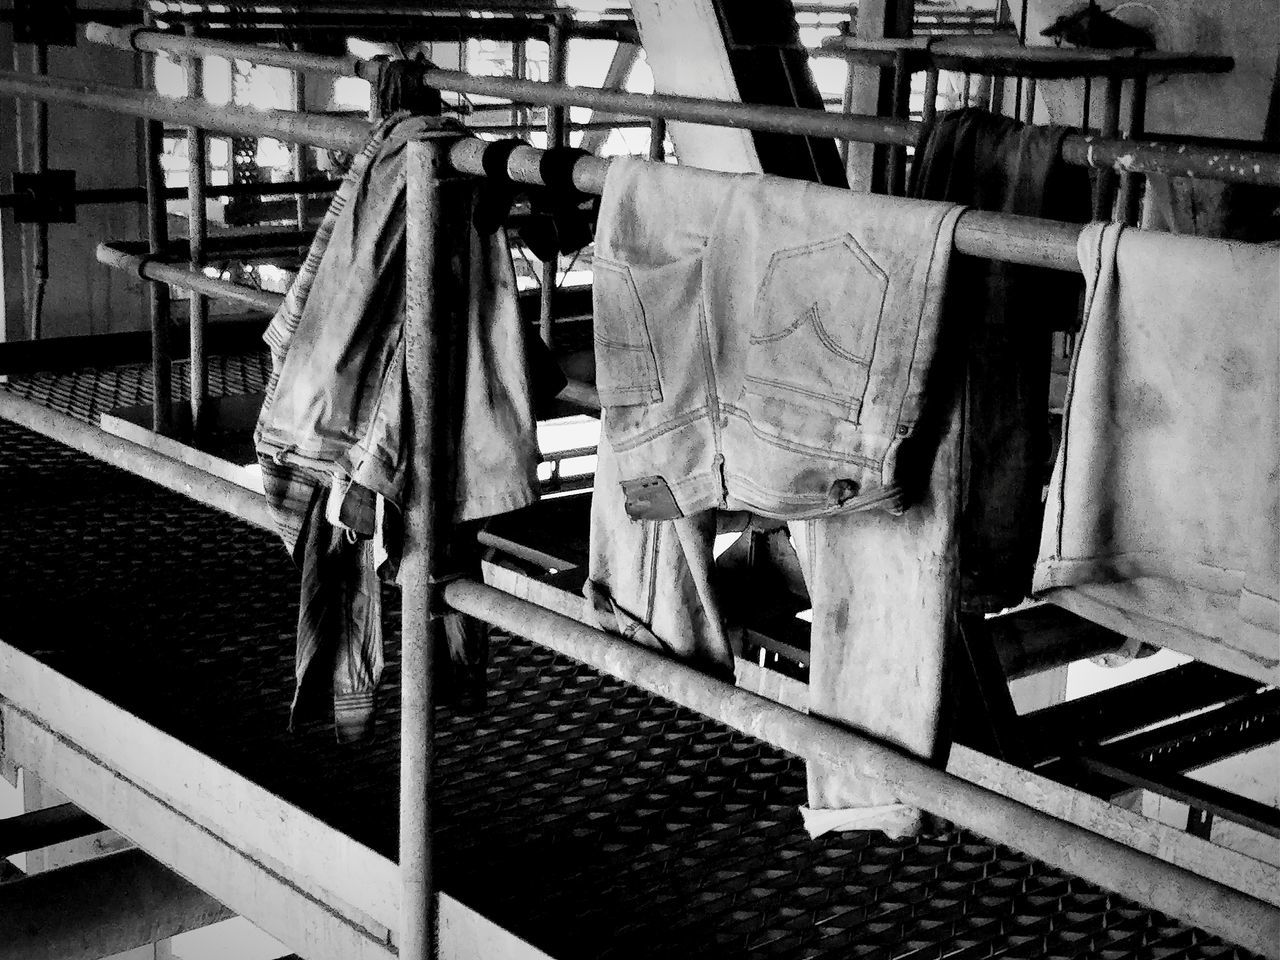 Day Indoors  Real People Occupation One Person Only Men People TheWeek On EyEem Monochrome Black & White Blackandwhite Bnw Clothing Dry Depression - Sadness Sadness Indoors